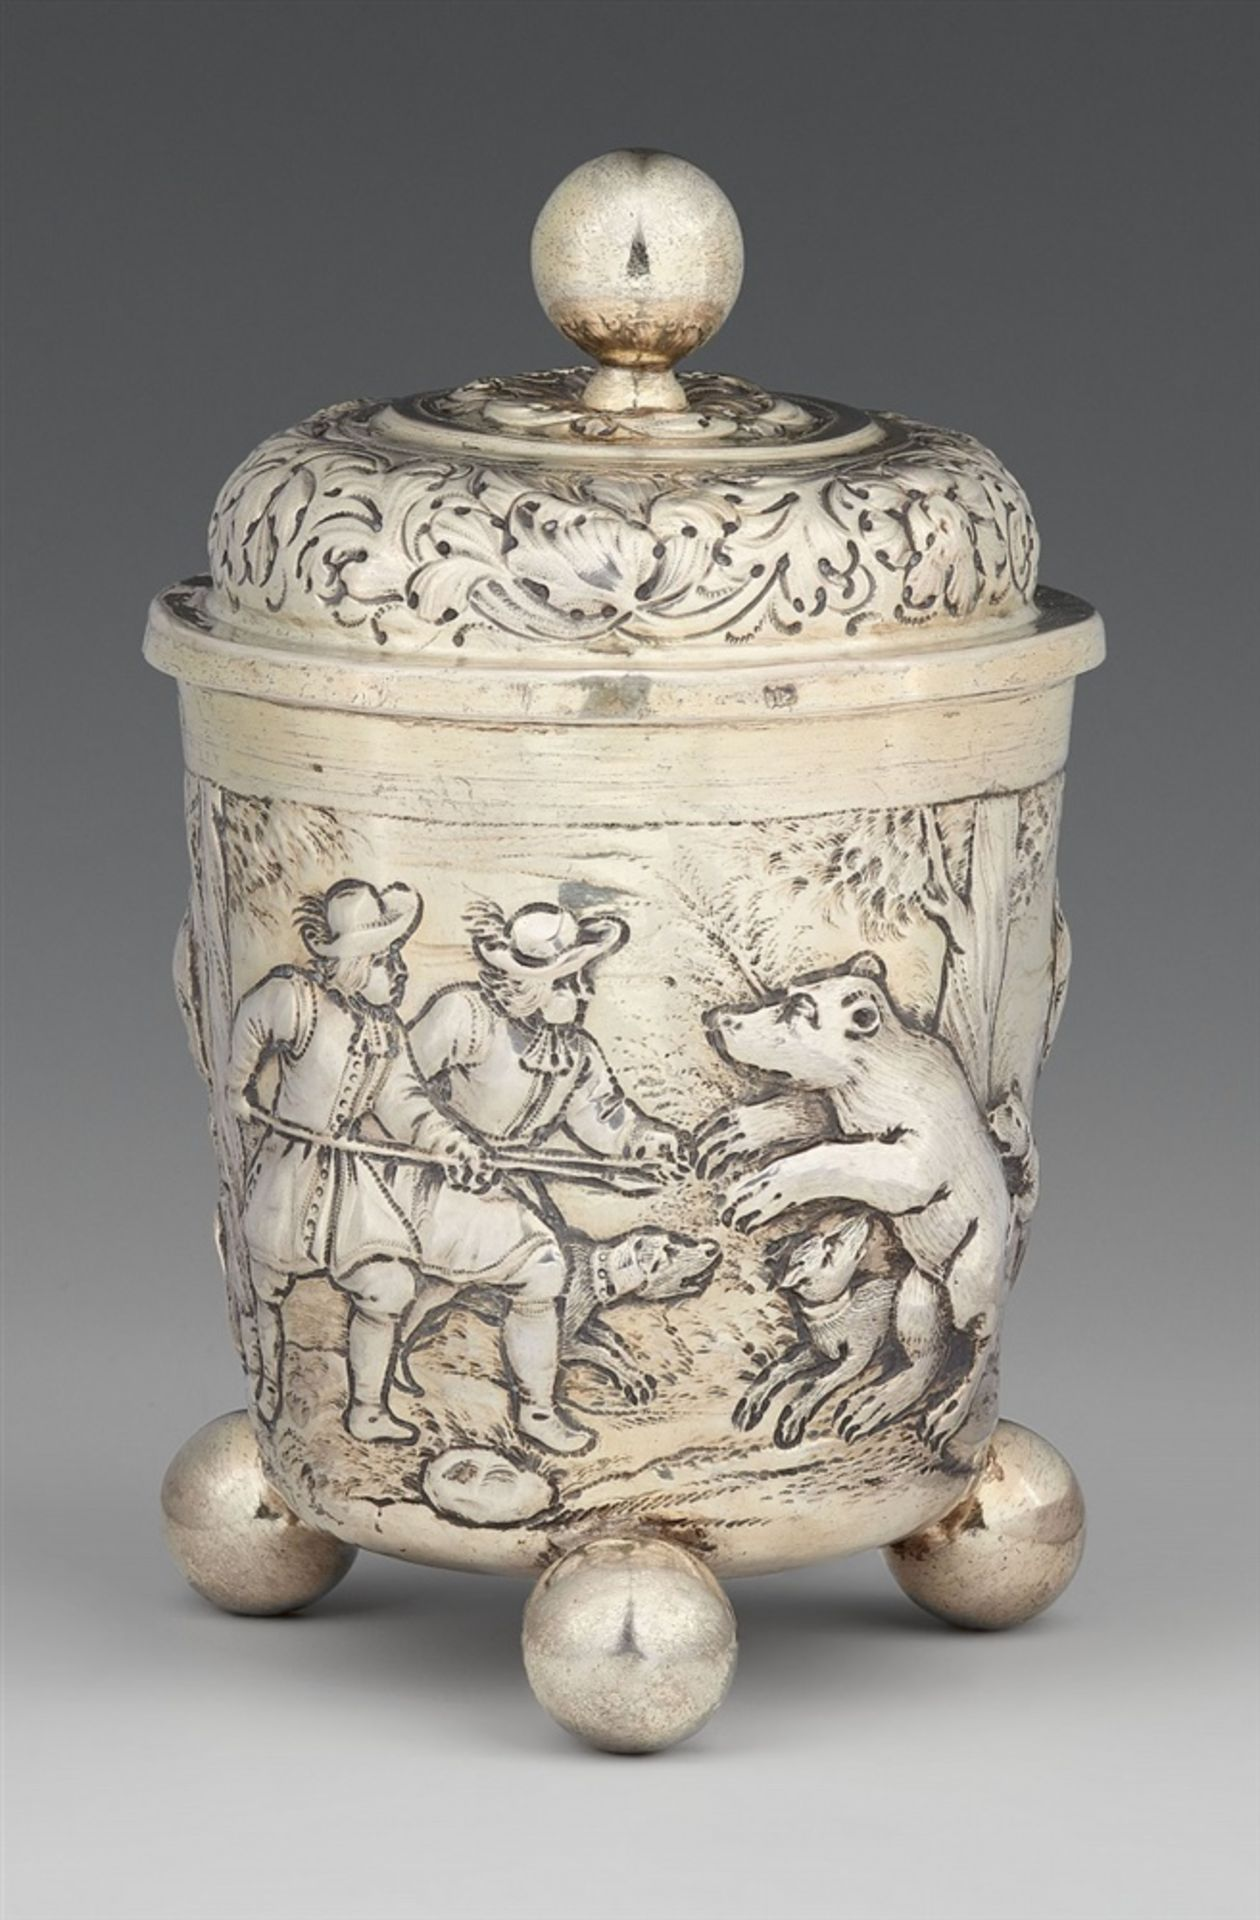 Los 743 - A Leipzig silver beakerParcel-gilt silver beaker with a domed slip lid and spherical supports.